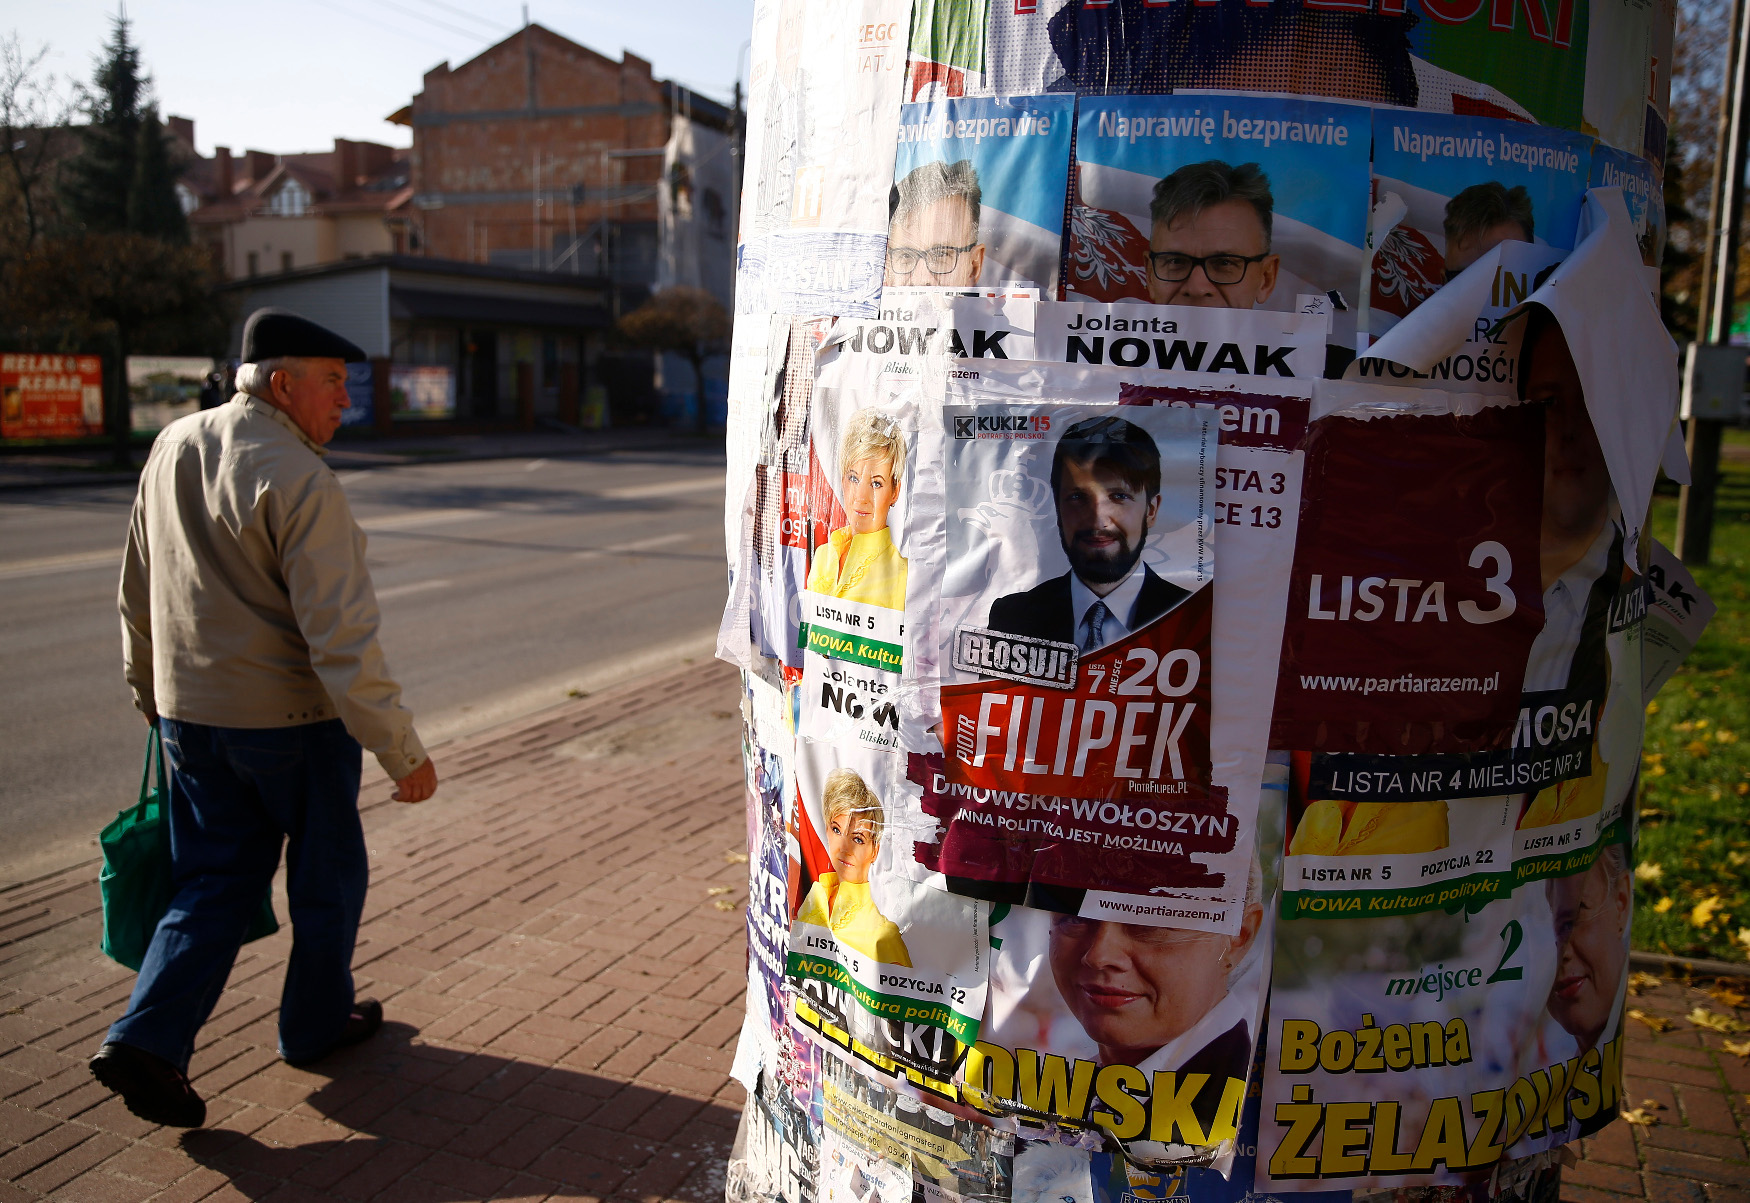 A man walks by an advertising pillar covered with election posters in Radzymin near Warsaw, Poland October 27, 2015. Polish eurosceptic, conservative opposition Law and Justice party secured a historic win in Sunday's parliamentary election, final results showed on Tuesday, unseating the centrist Civic Platform after an eight-year rule. REUTERS/Kacper Pempel  - LR1EBAR14SPNV